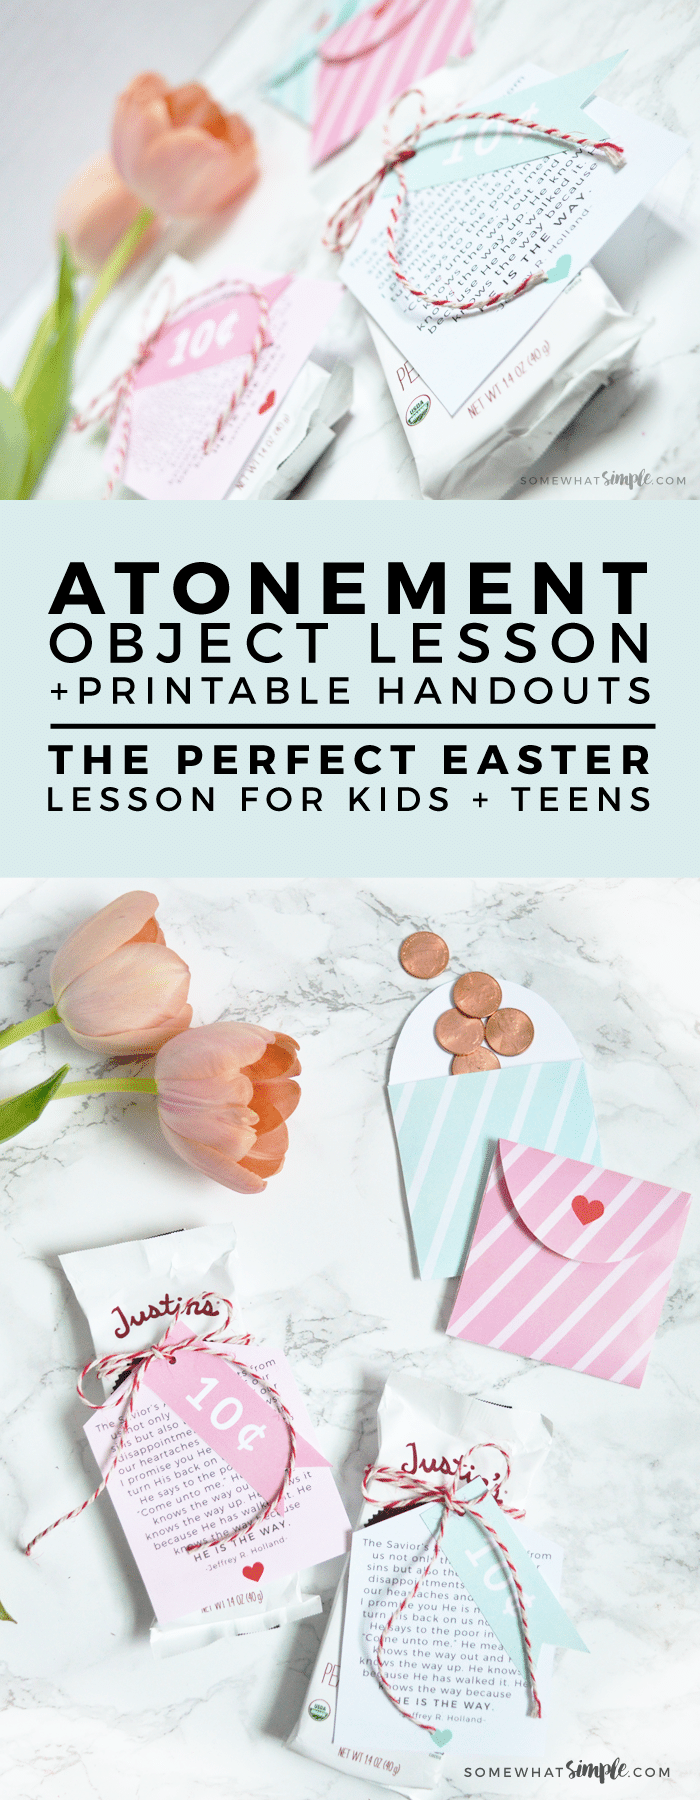 We love how simple + beautiful this Easter and Atonement Object Lesson is! It's the perfect way to help children and teens visually understand the concept of Christ's Atonement for us. #atonement #objectlesson #easterlesson #handout #YWhandout #YWLesson #LDS